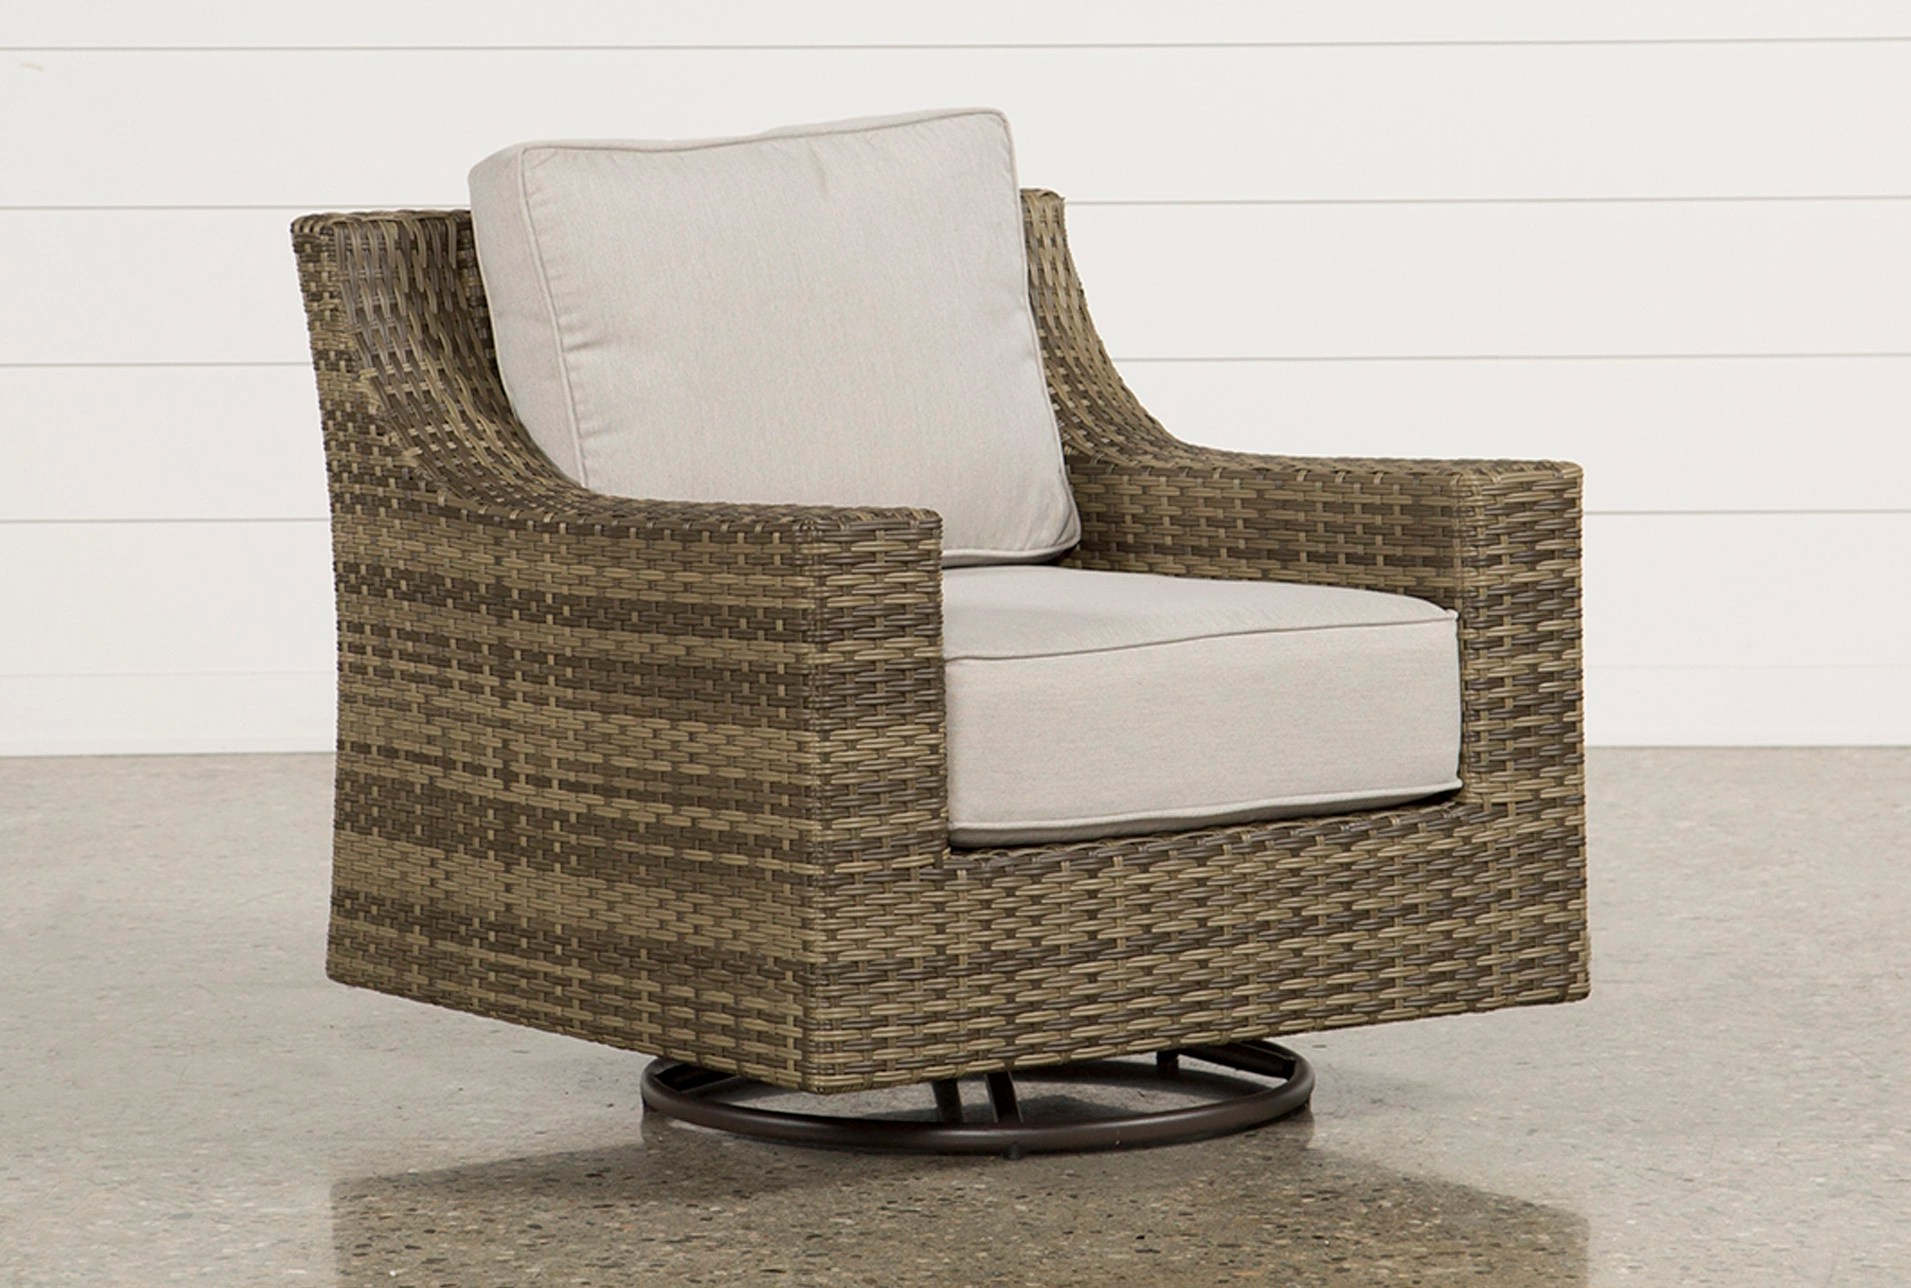 brown swivel chair heavy duty computer outdoor aventura living spaces qty 1 has been successfully added to your cart